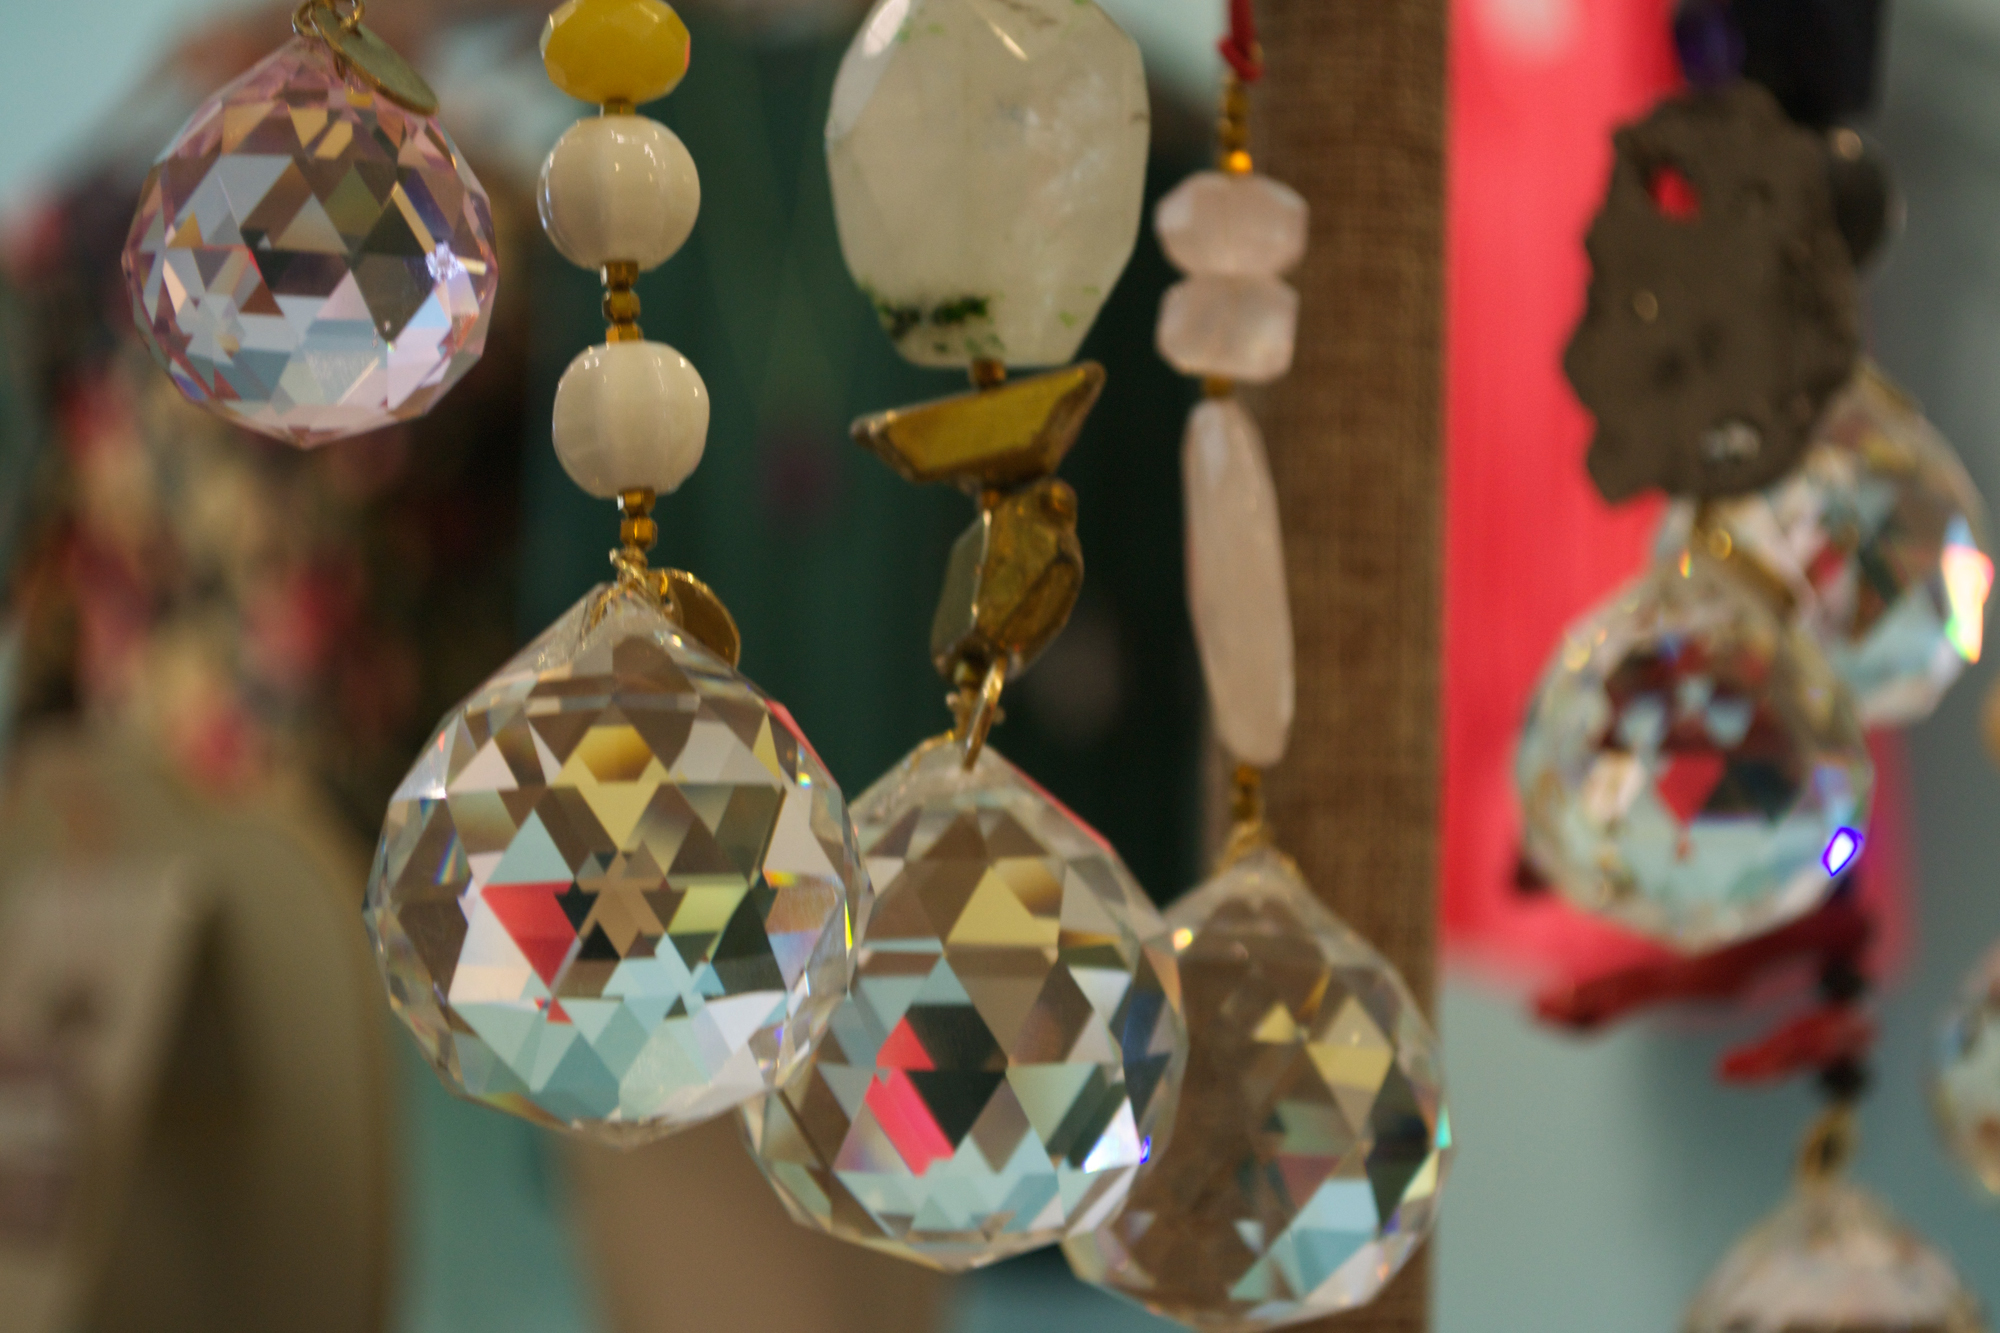 These are Feng shui beads, designed to add harmony to your existence